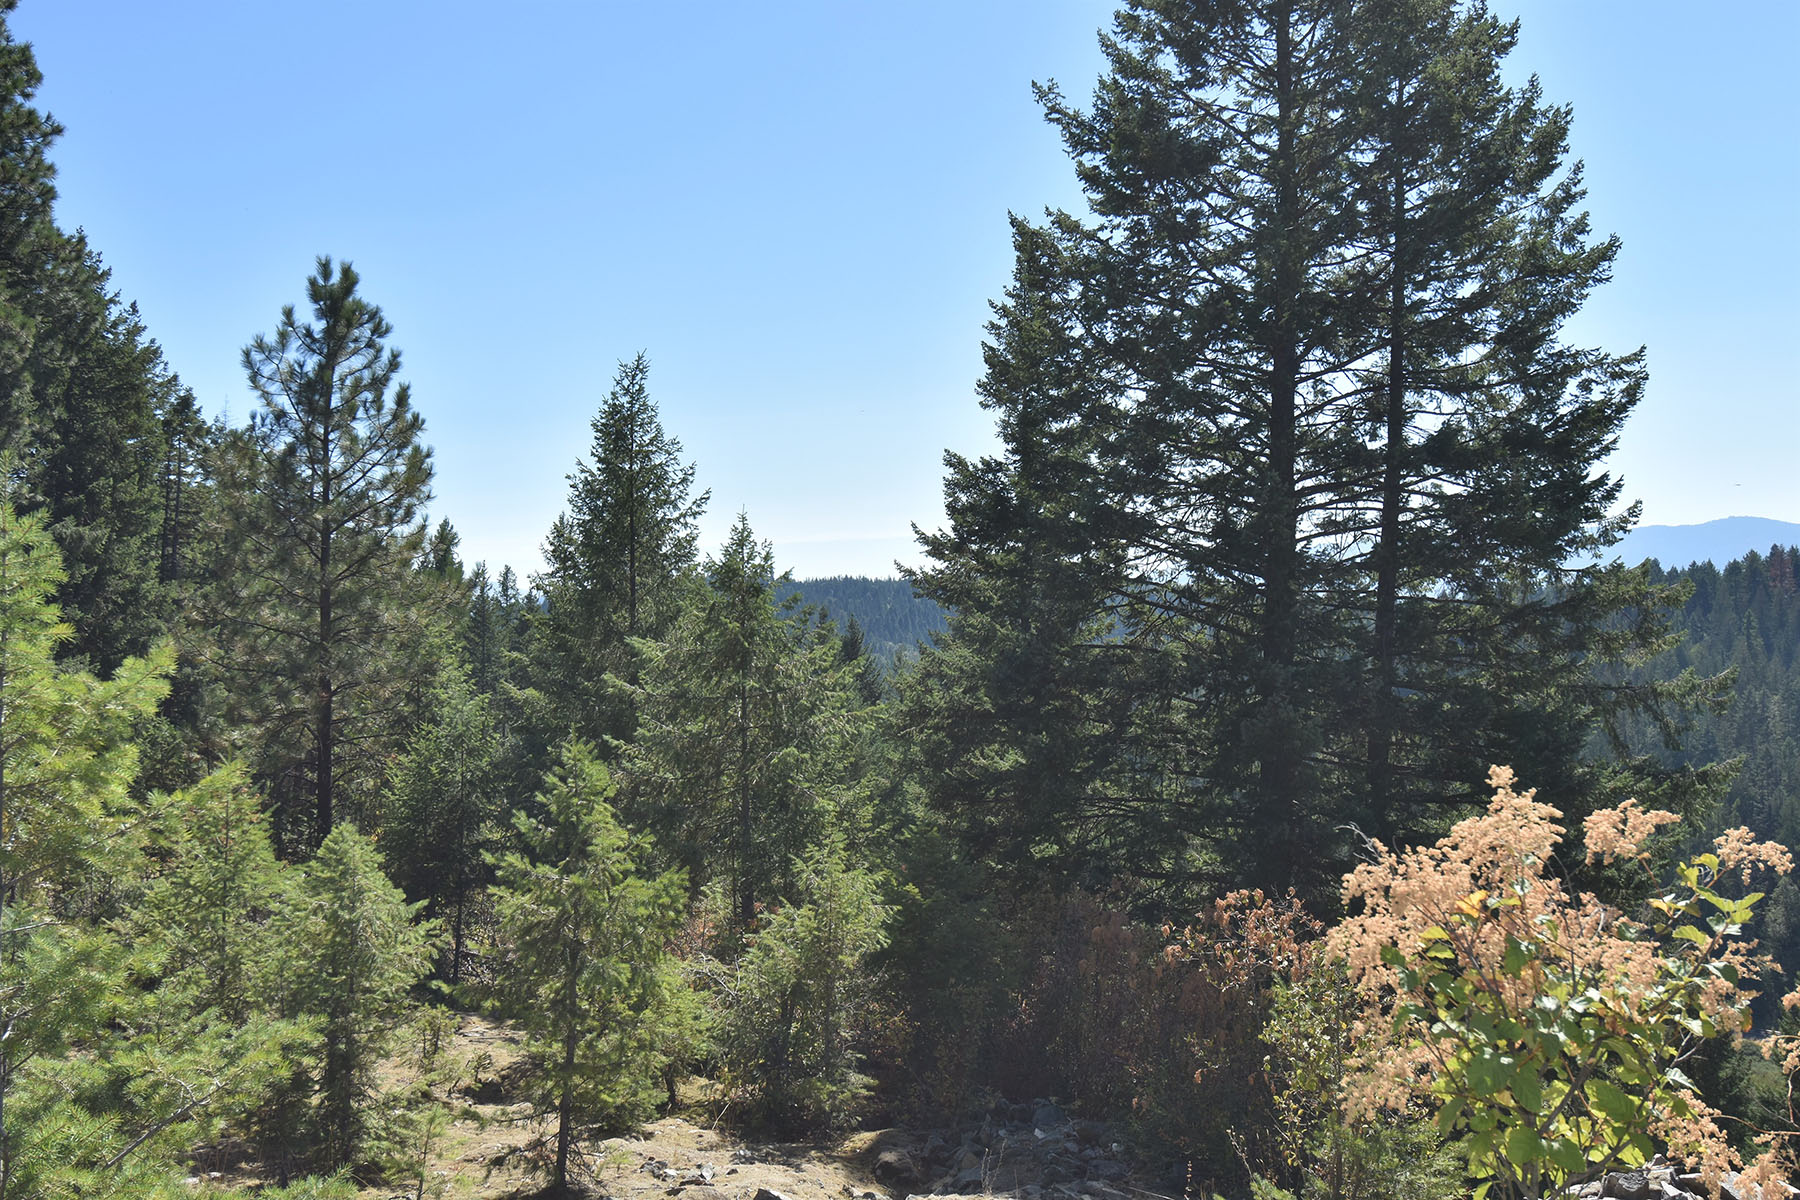 Additional photo for property listing at The Idaho Club Blk 5 Lot 5 Blk 5 Lot 5 S Idaho Club Dr Sandpoint, Idaho 83864 United States